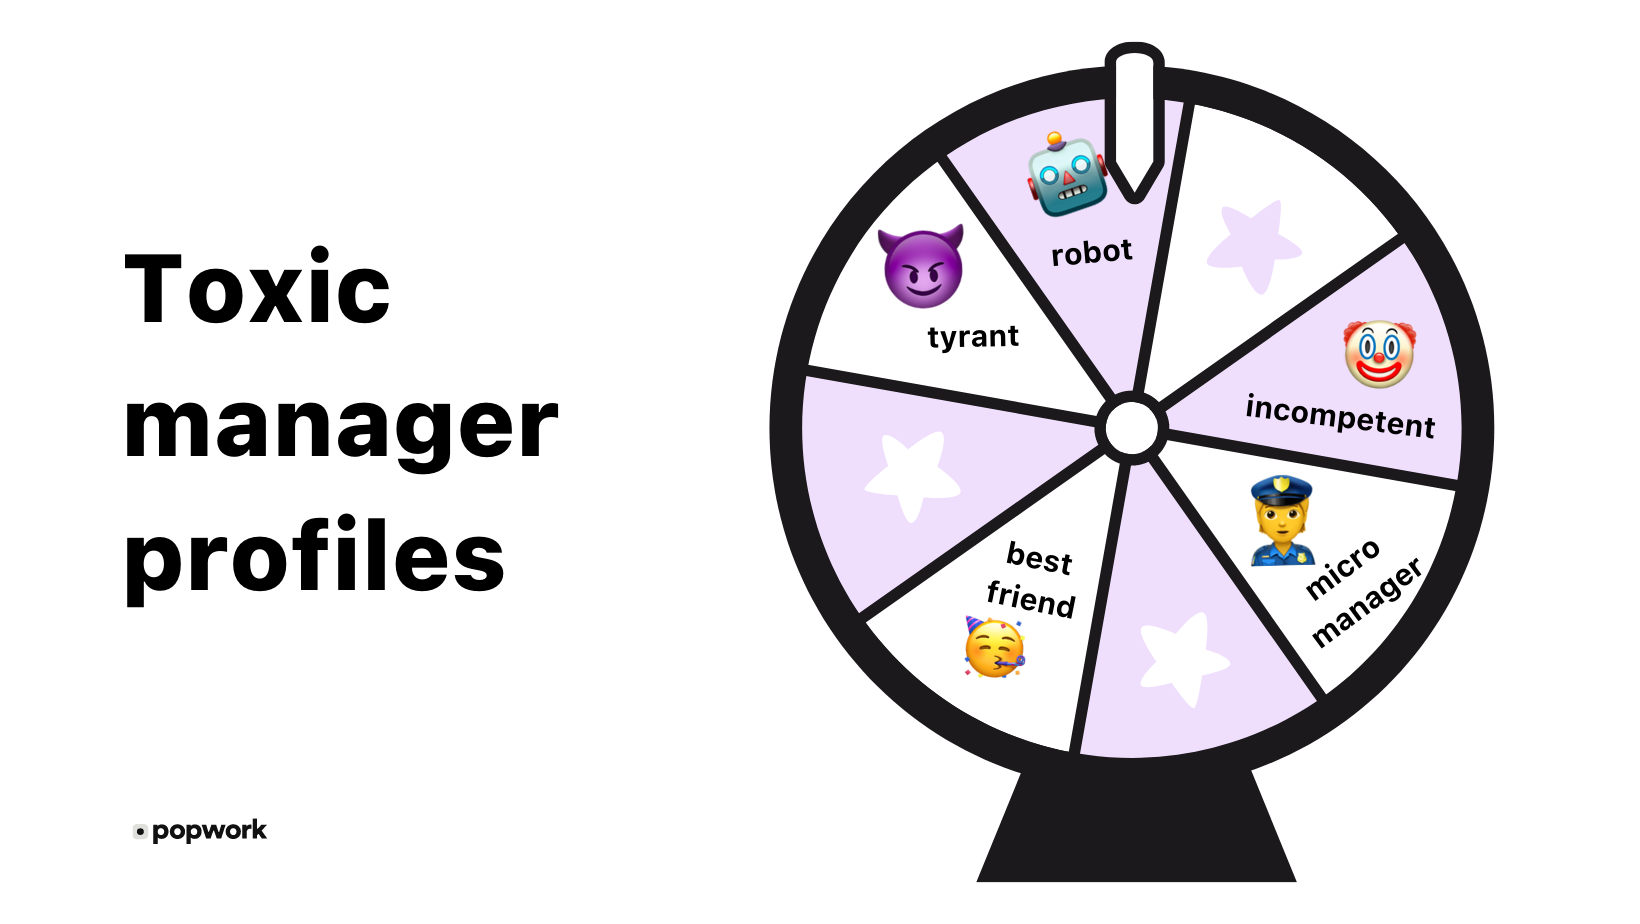 Toxic manager profiles: tyrant, best friend, micro manager, robot, incompentent - Popwork